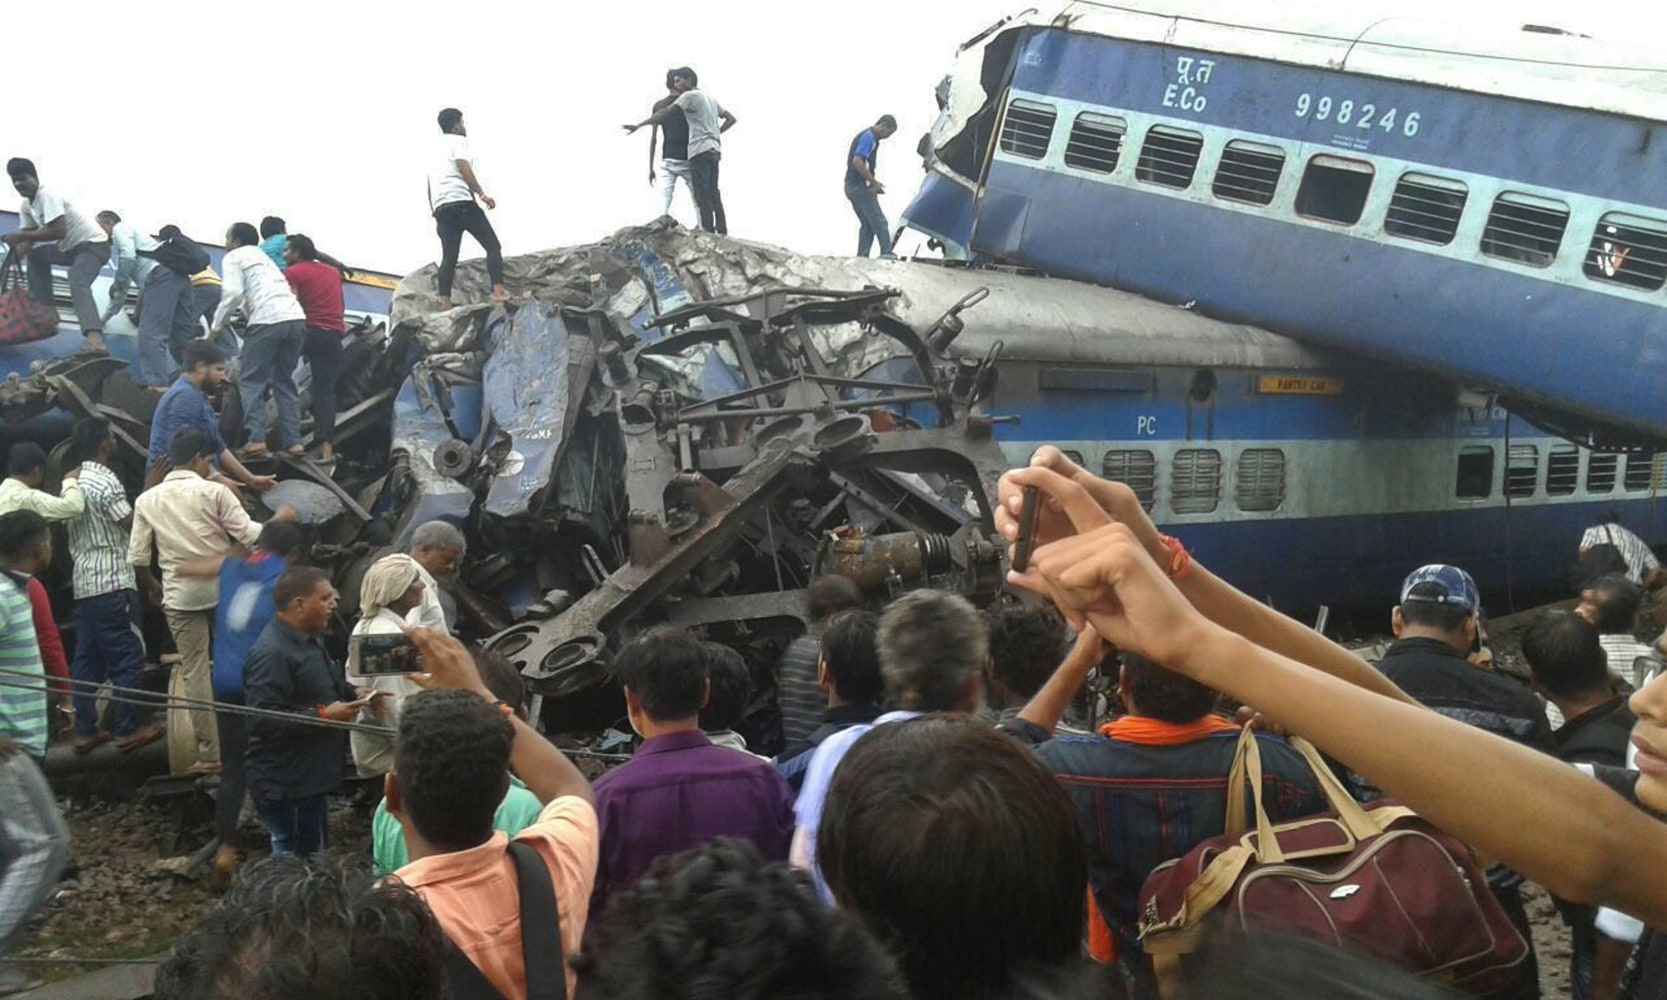 10 die in train derailment in India's Uttar Pradesh